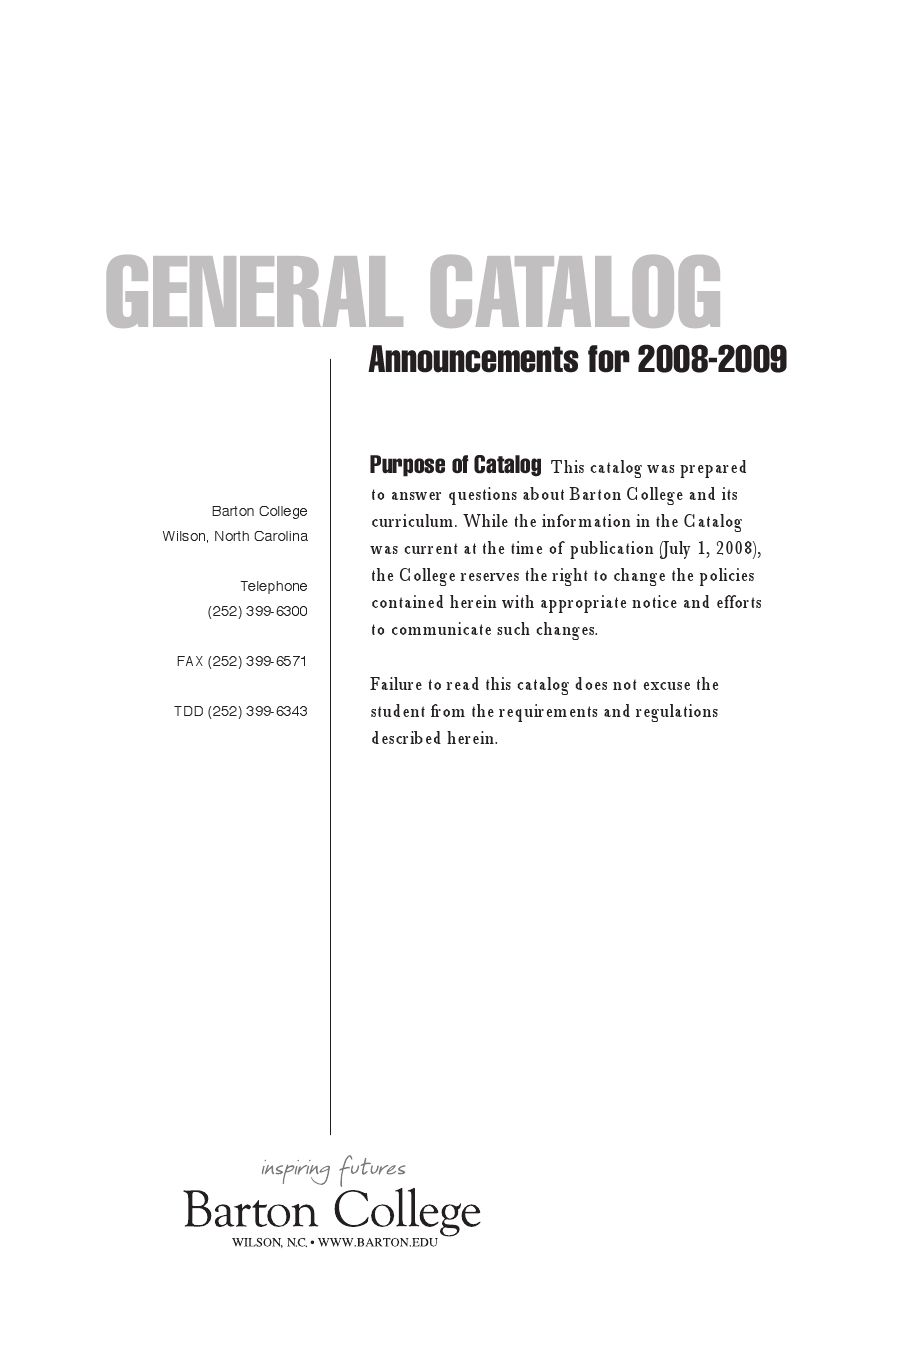 Optimal Resume Harris School Of Business 2008 2009 Barton College Course Catalog By Keith Tew Issuu